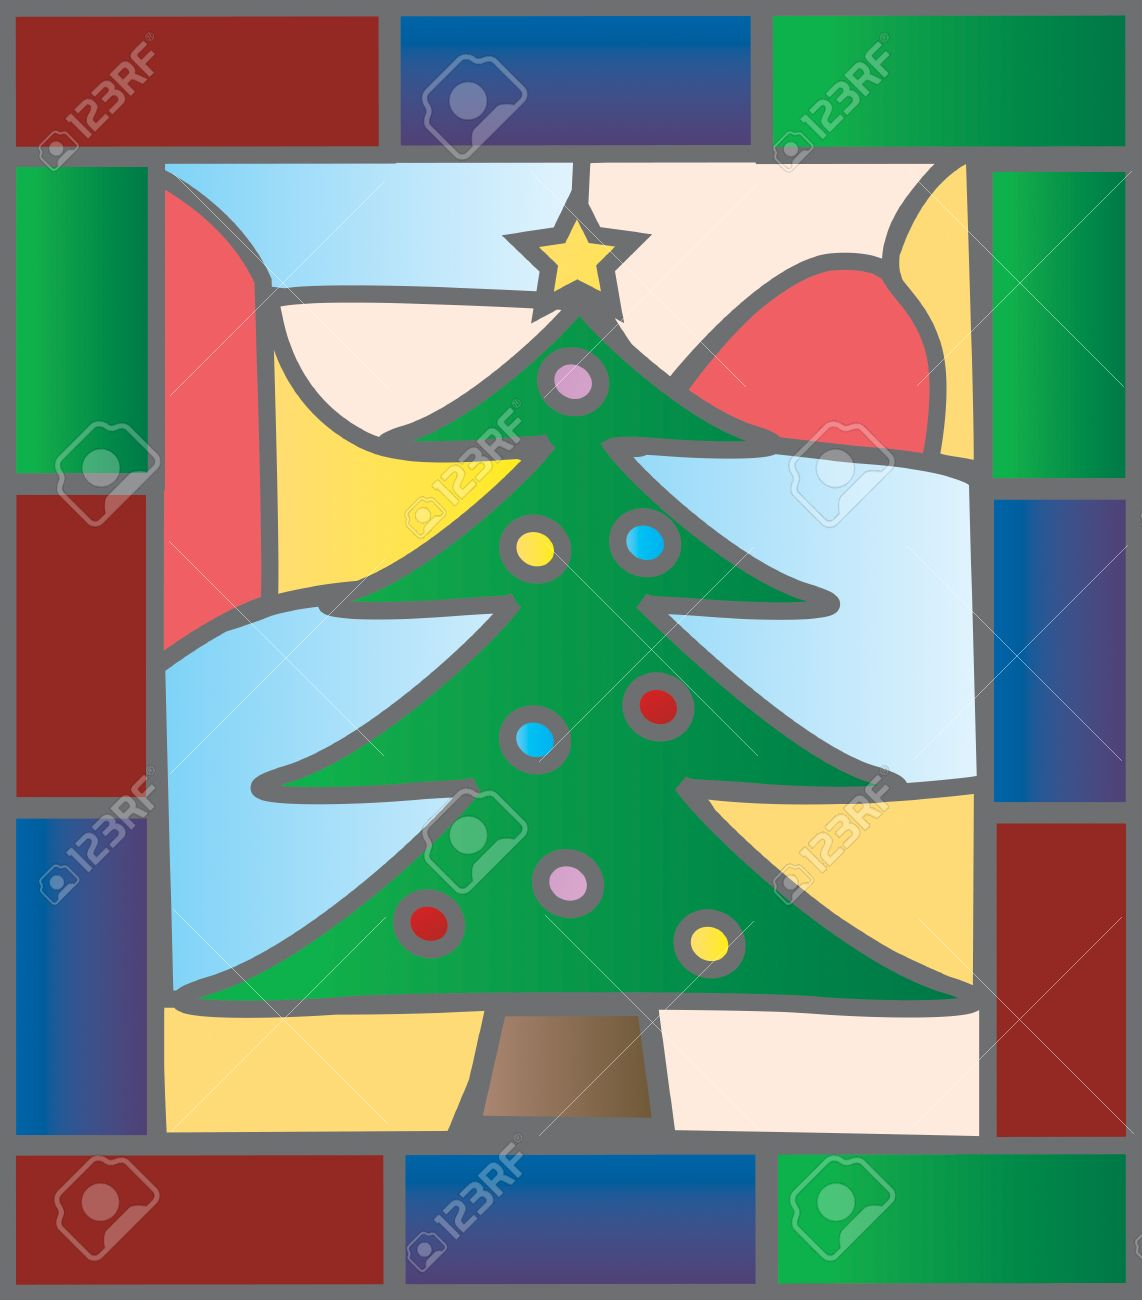 Christmas Tree Illustration In A Stained Glass Window Style ...